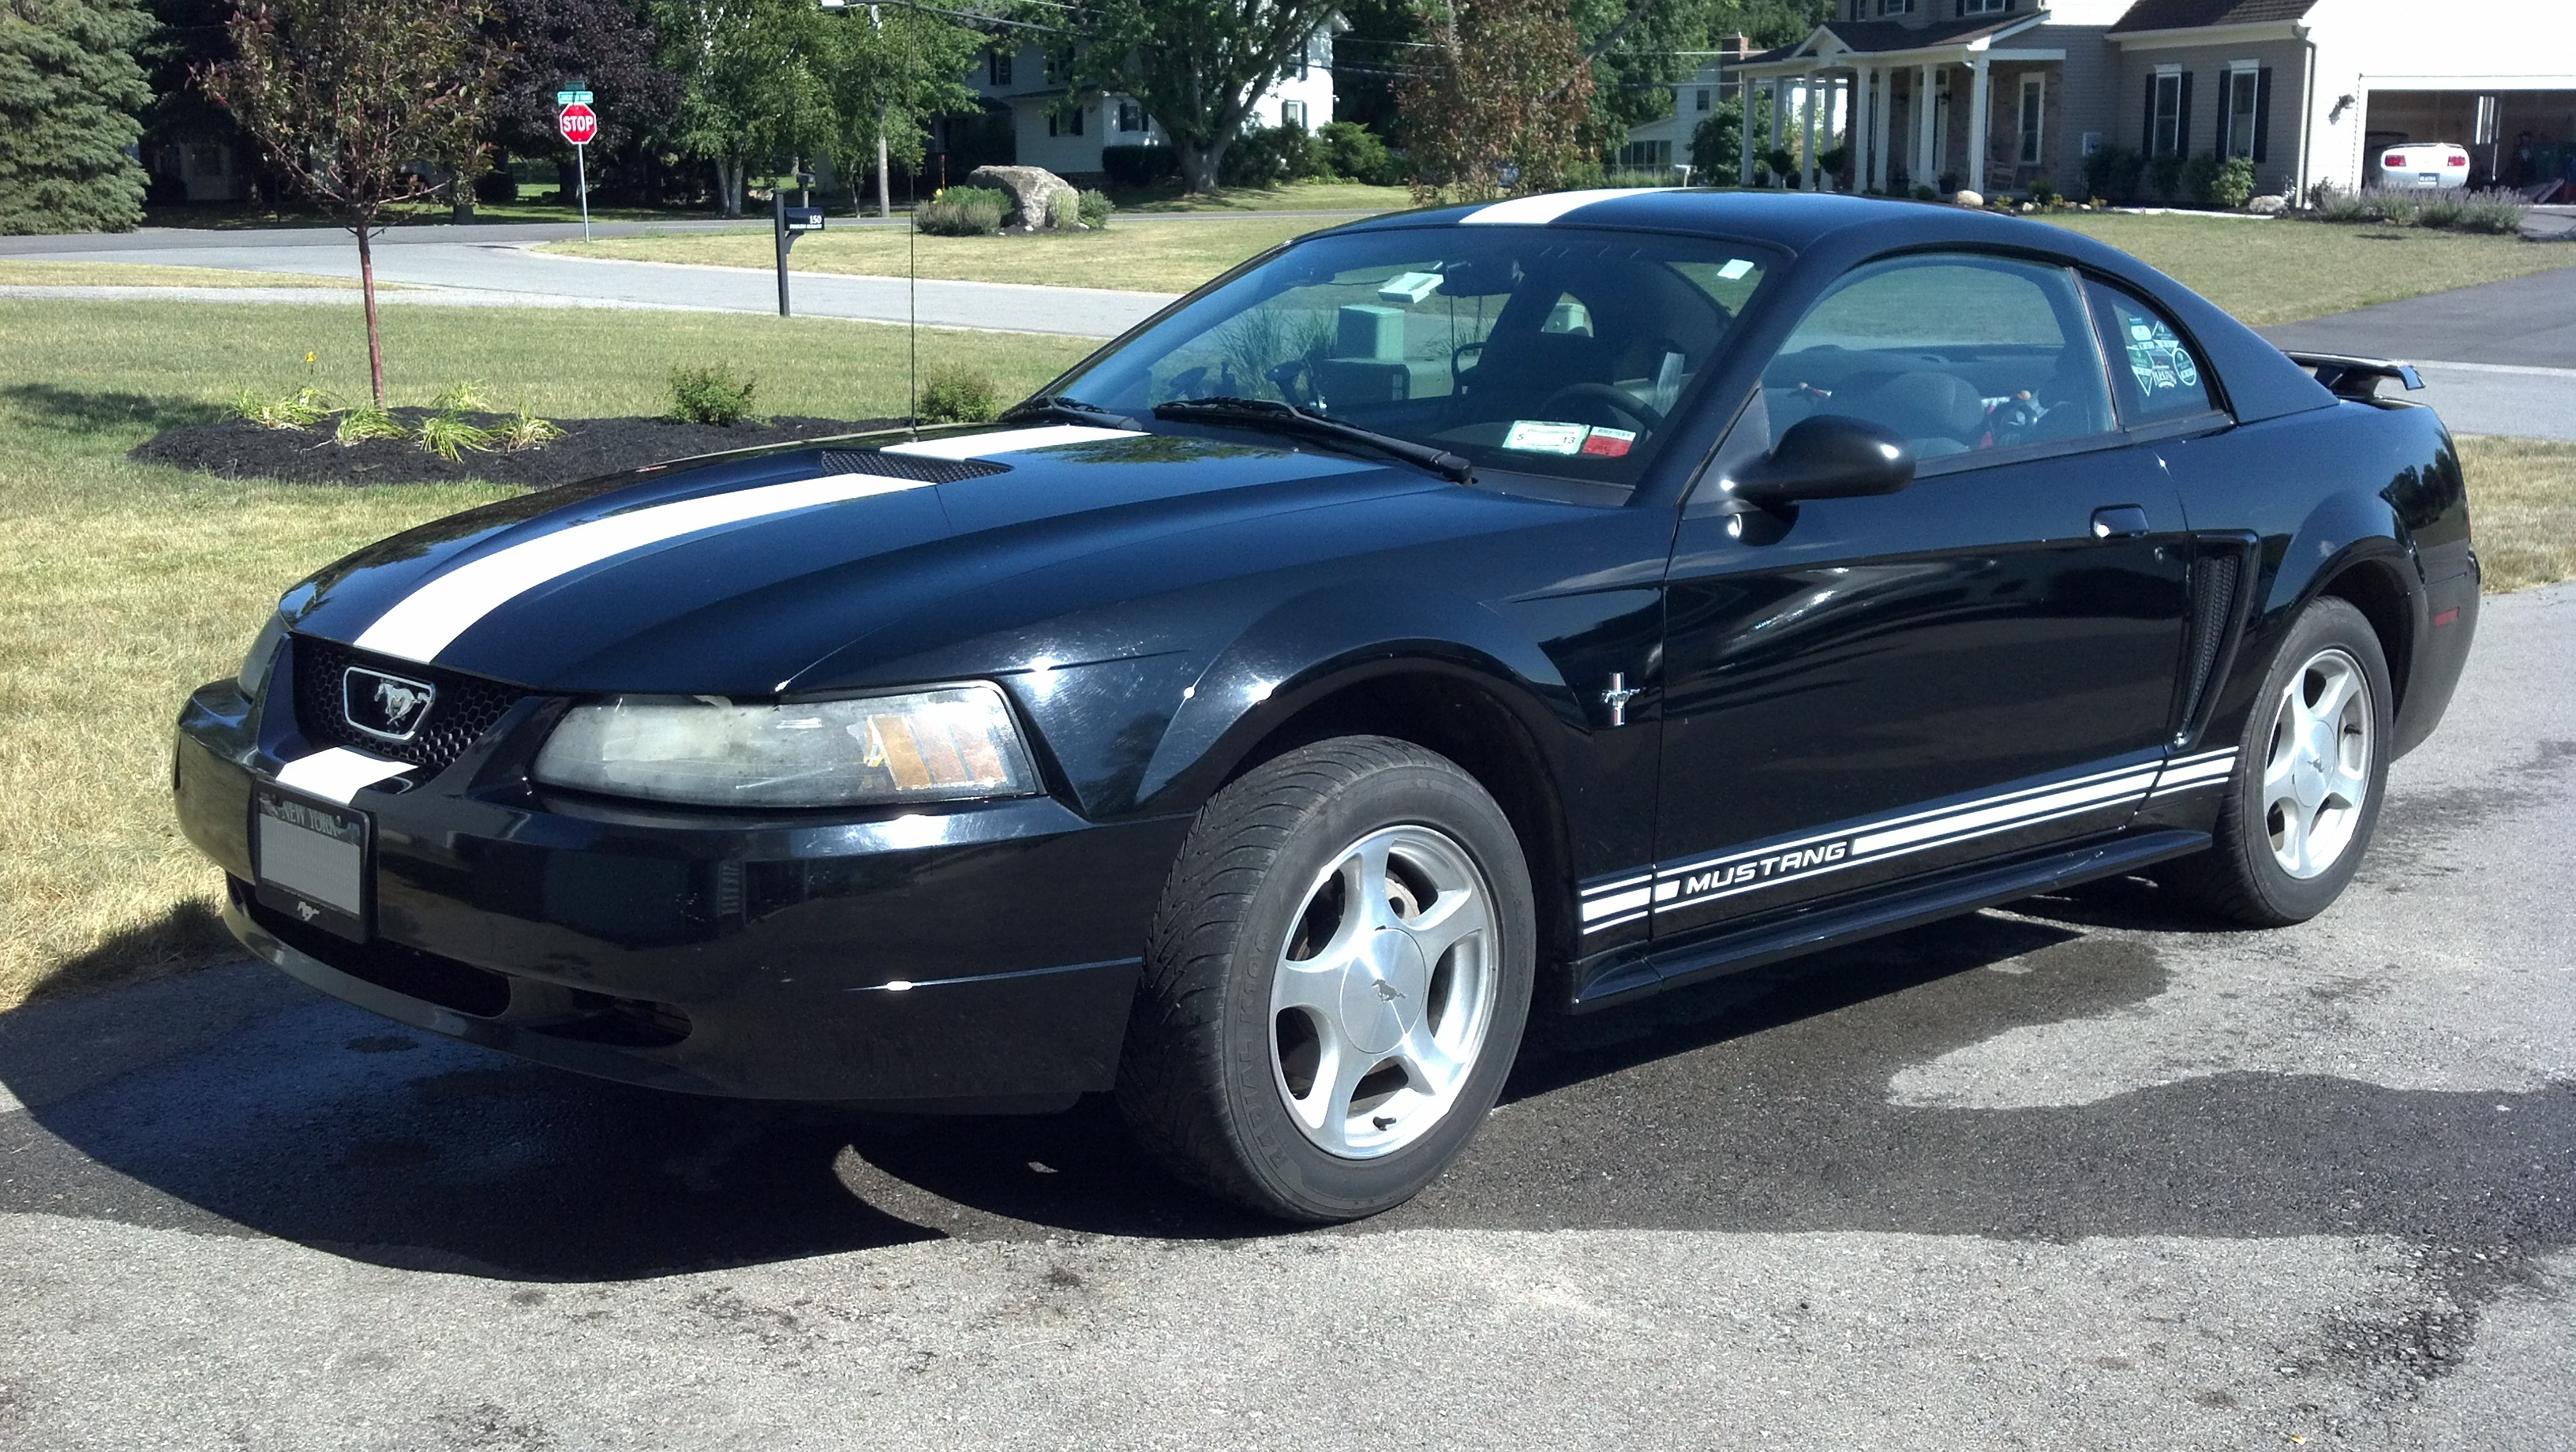 2001 Ford Mustang Information And Photos Zombiedrive 5 0 Engine Diagram 6